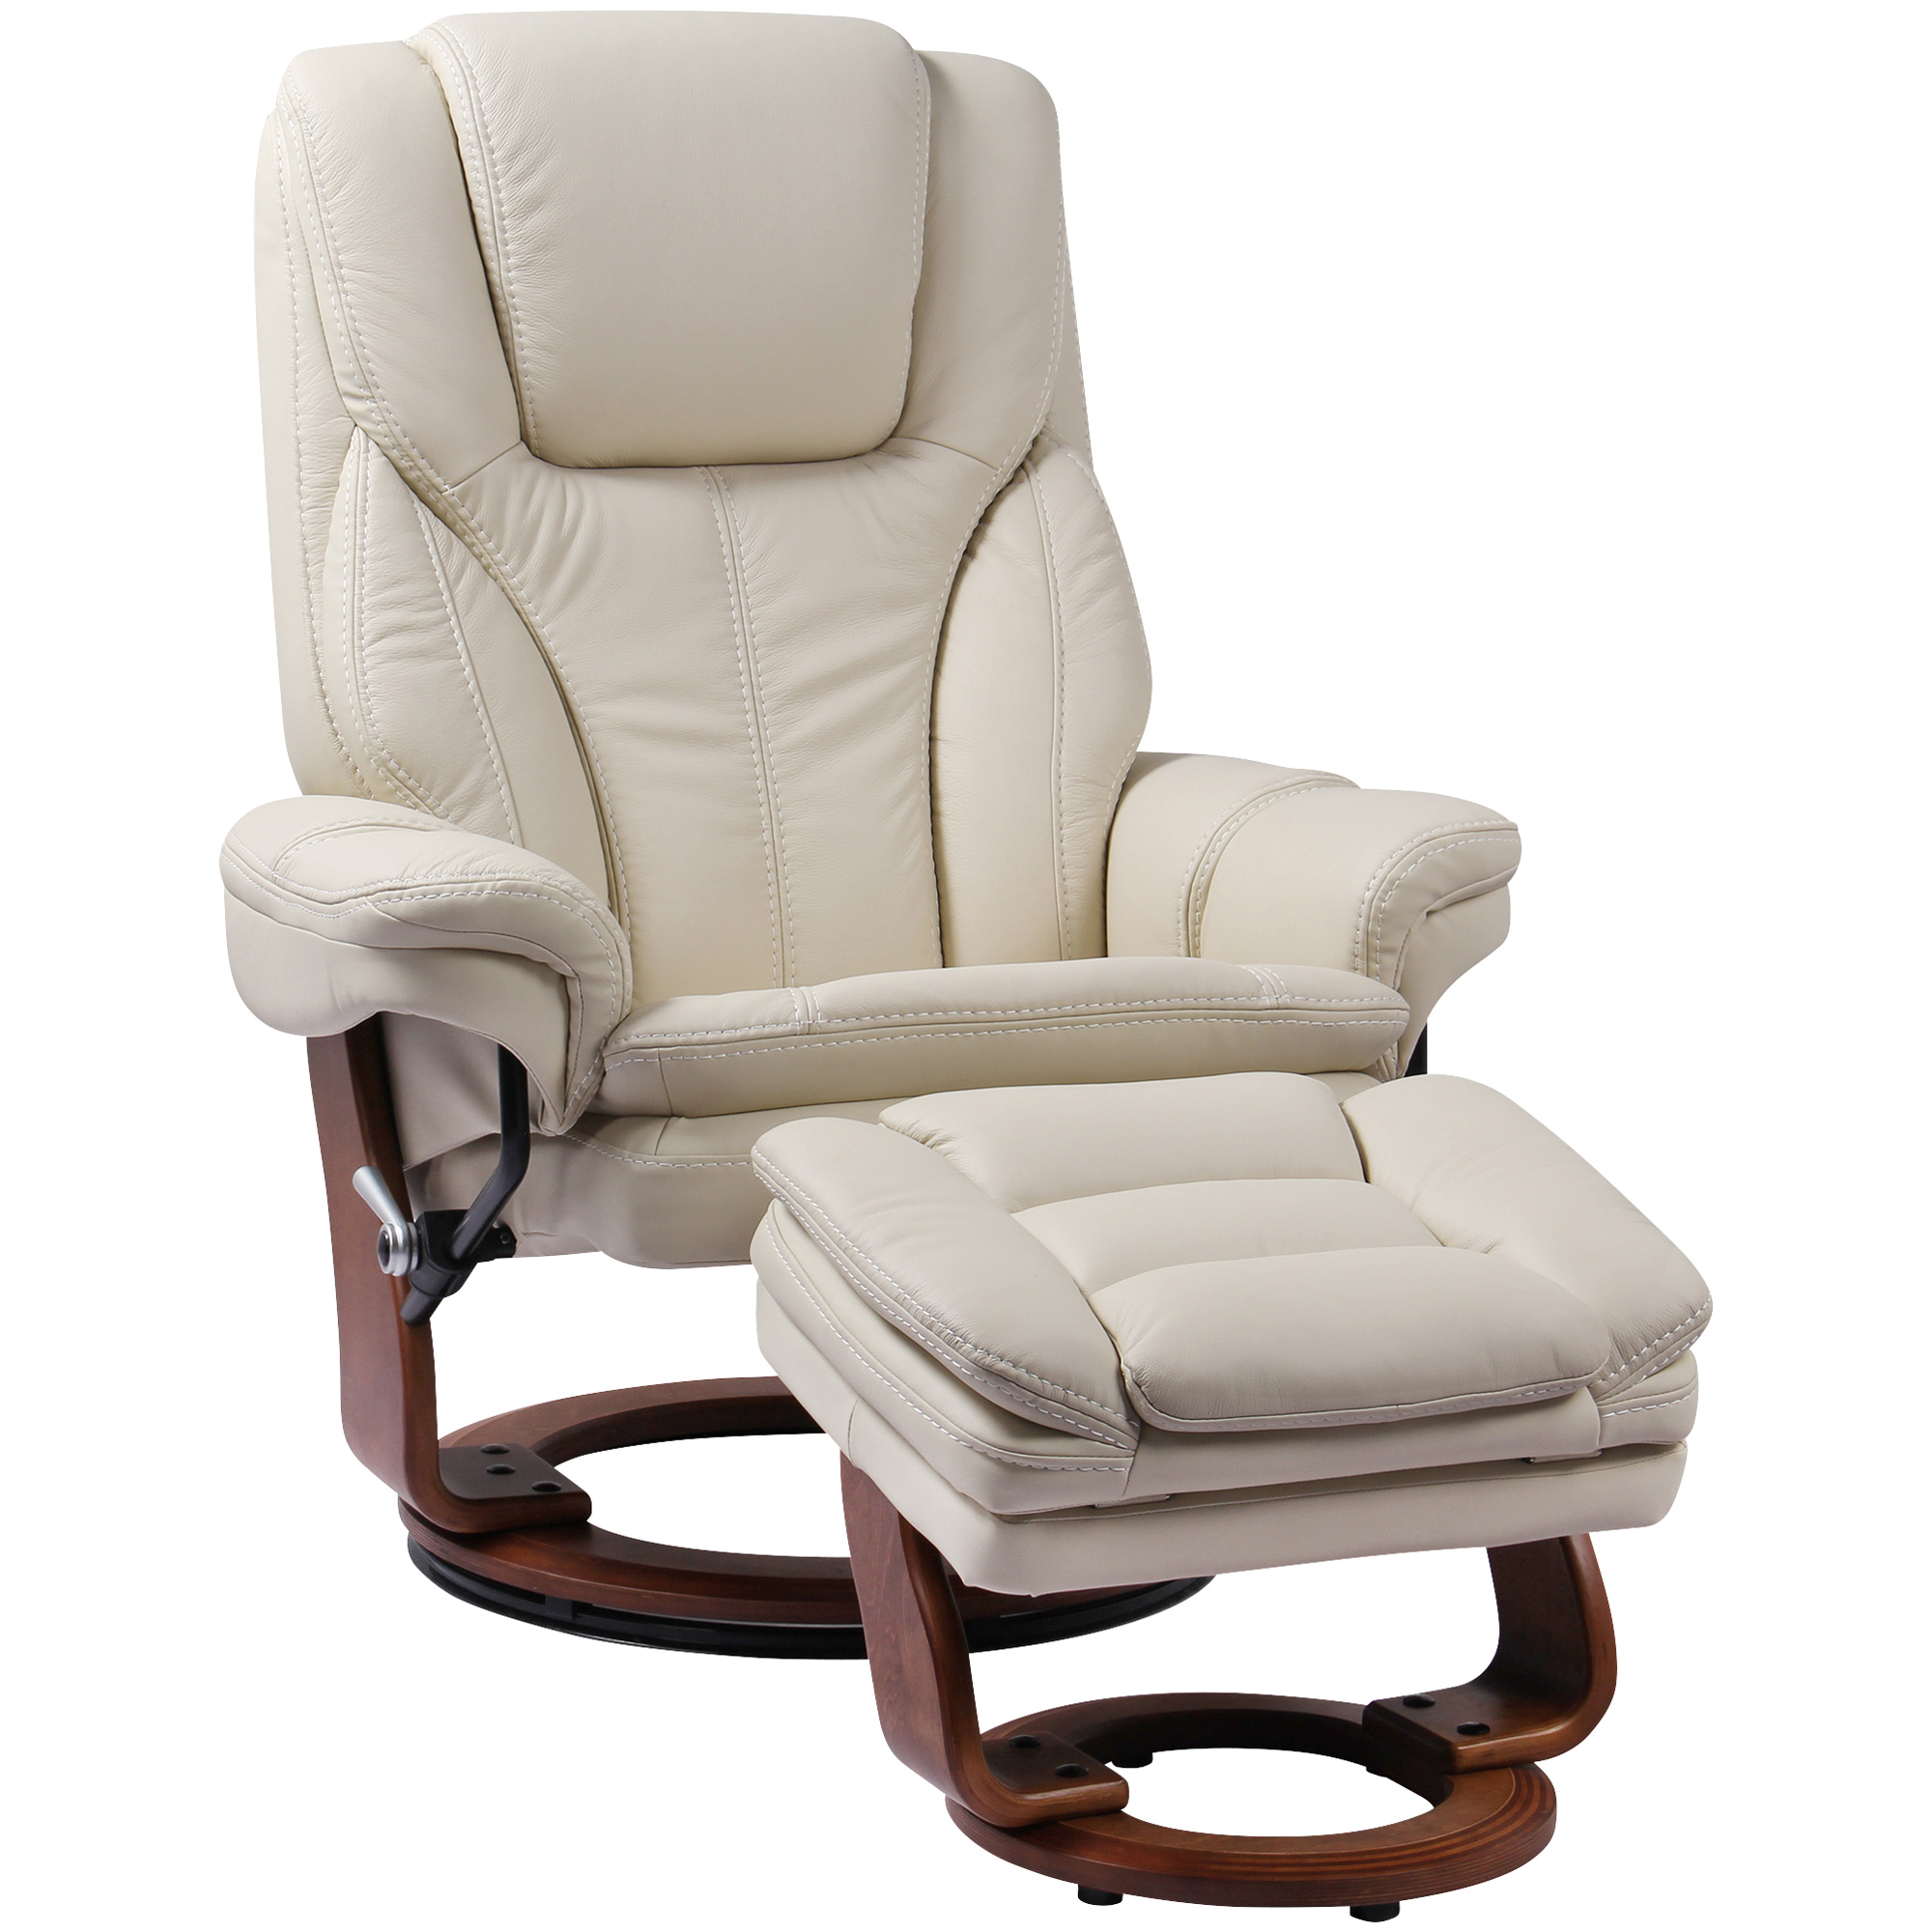 Benchmaster | Hana White Recliner Chair with Ottoman